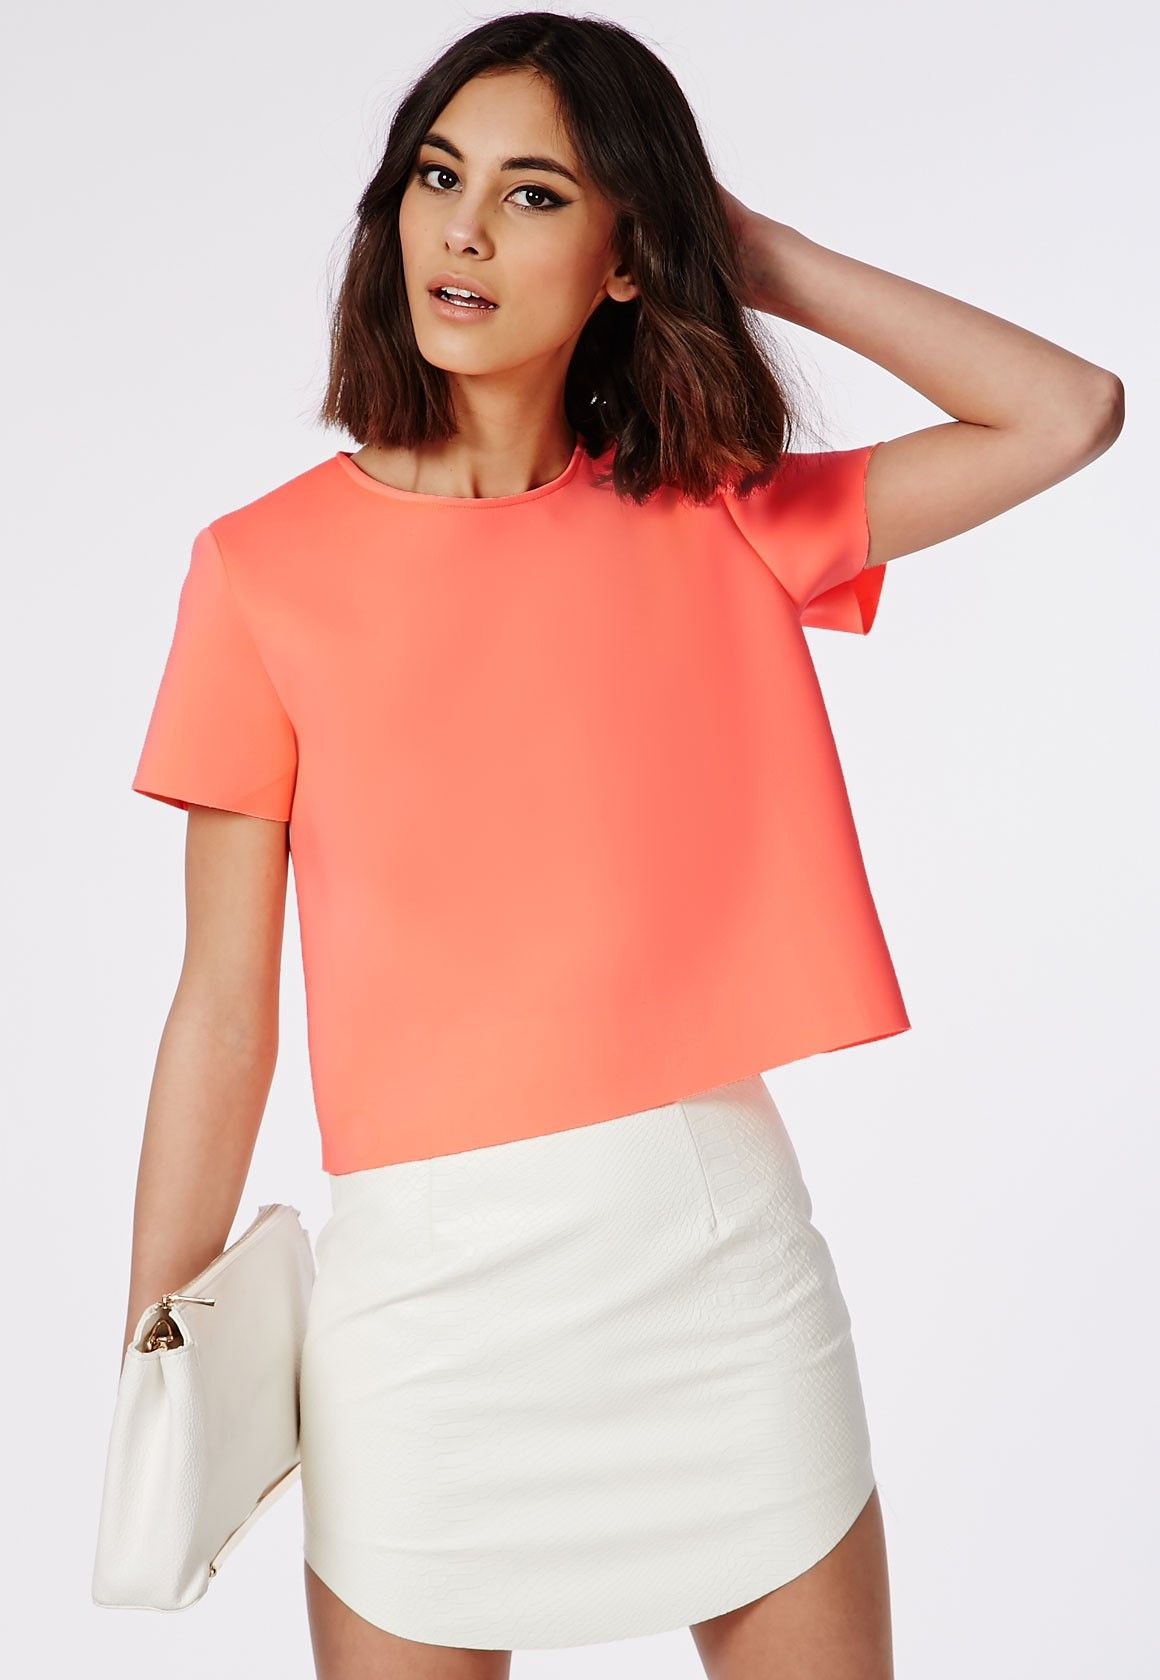 dd72dab35a Neoprene Boxy Top - Tops - Box Tops - Missguided